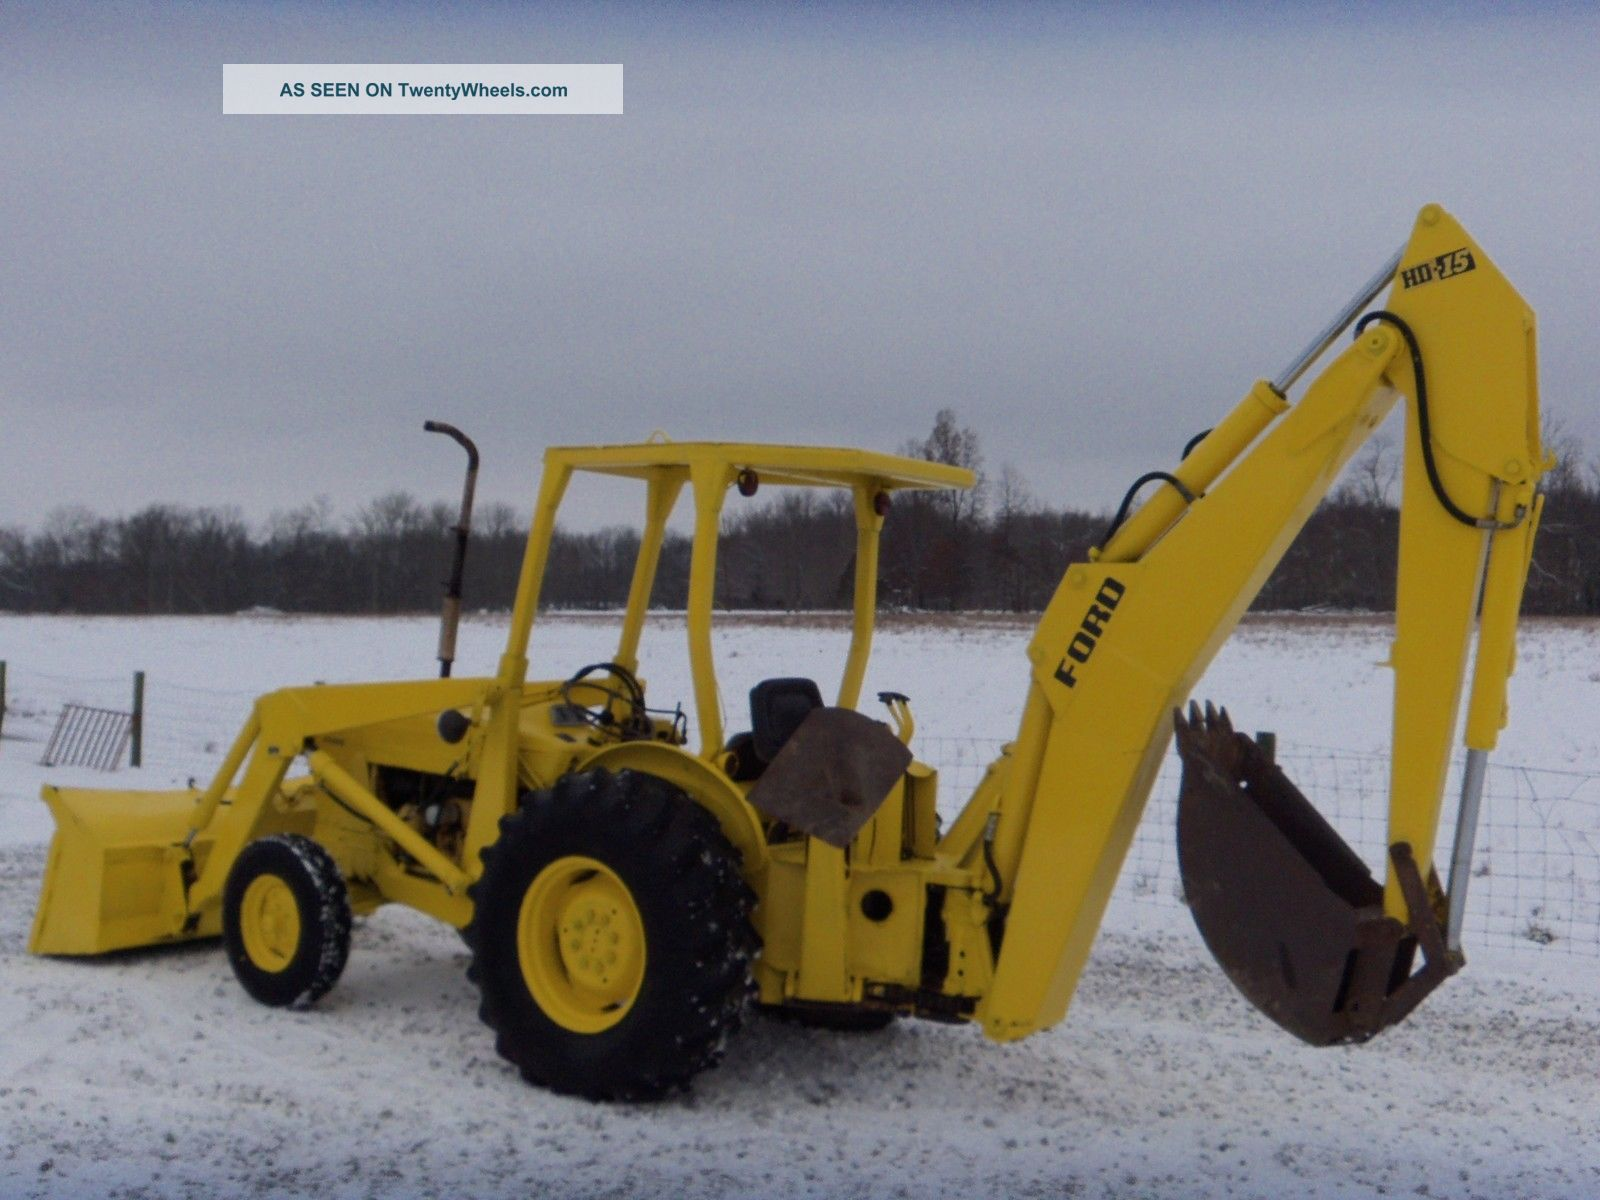 Ford 4500 Industrial Tractor Backhoe : Ford industrial loader tractor